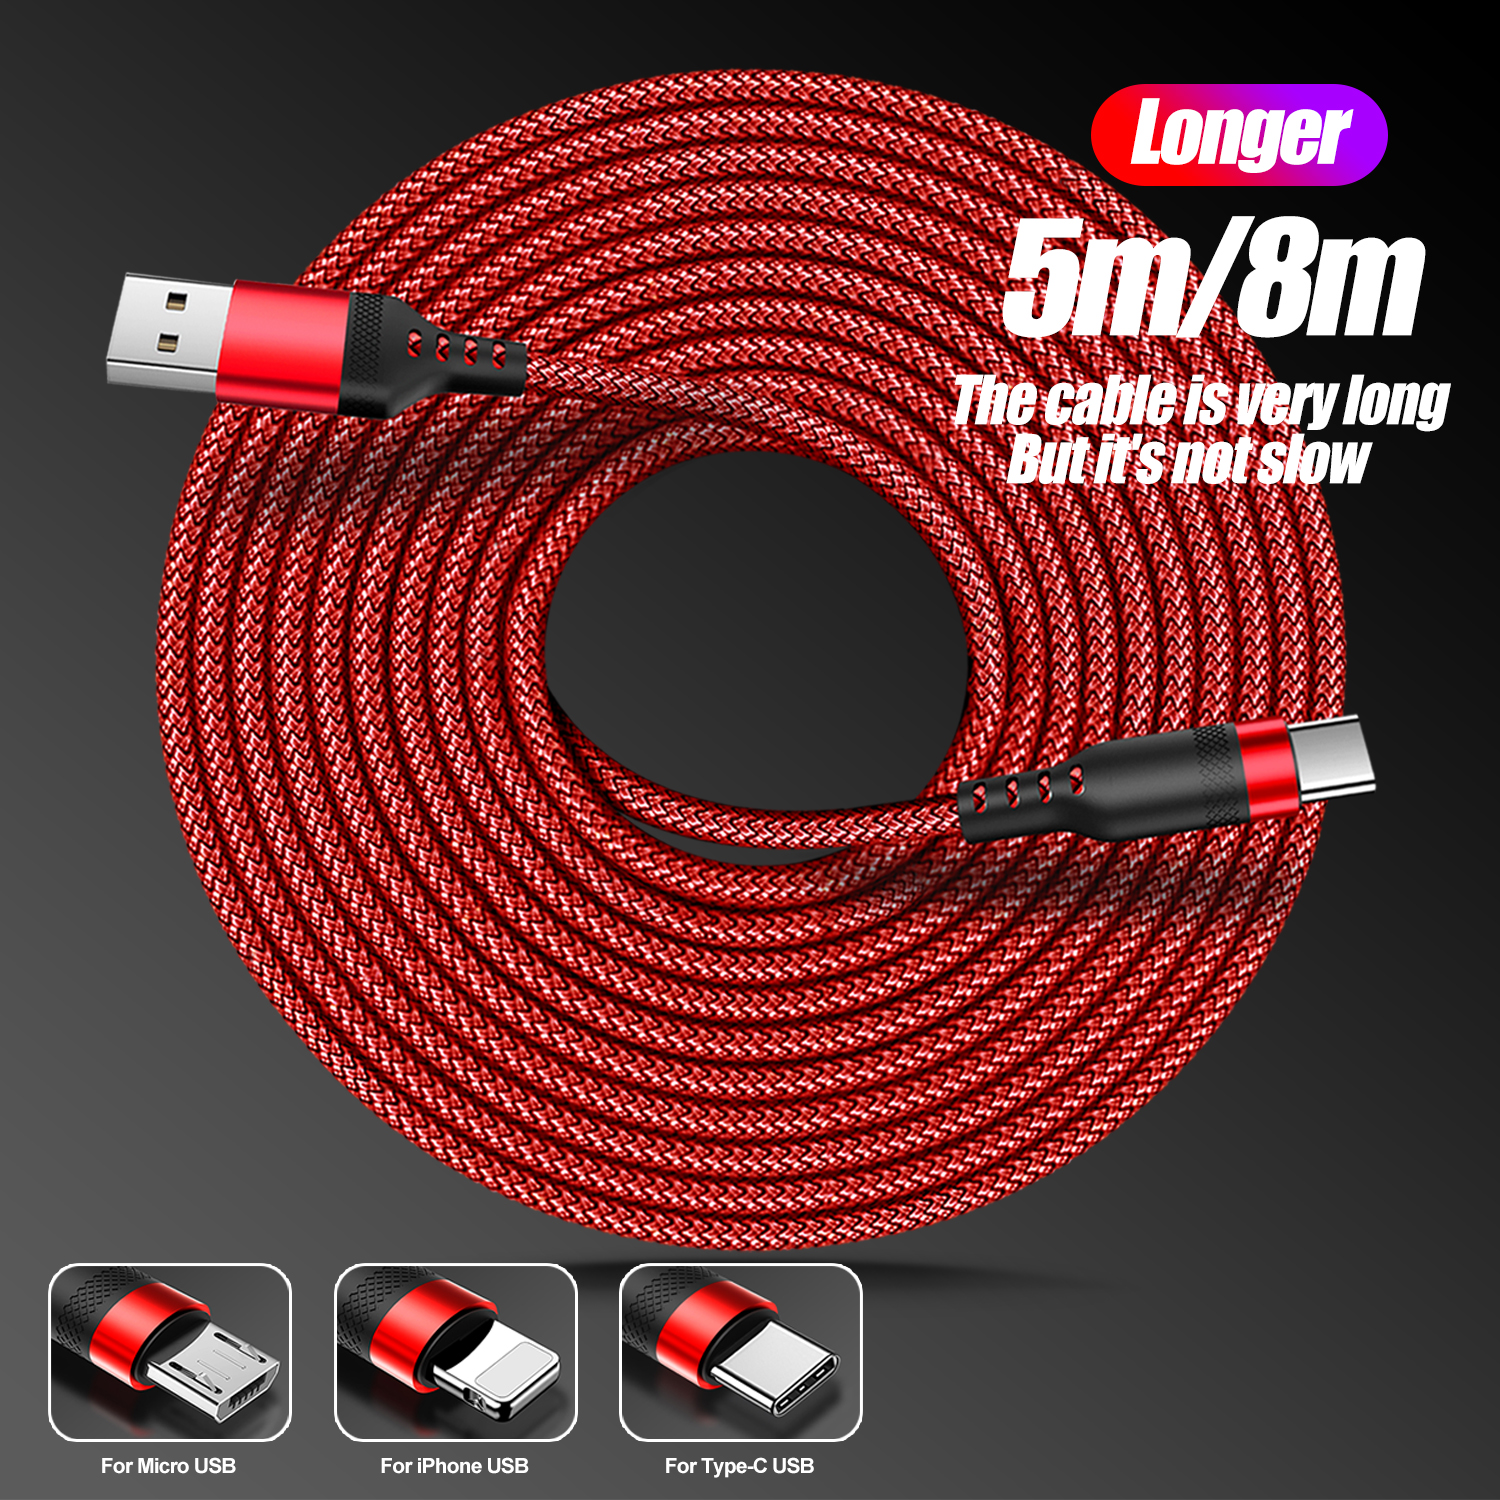 5m/8m Long Charging Cable for Lightning/Type C/USB Micro Durable Nylon Braided Charging Wire for IOS/Android phone Fast Charger